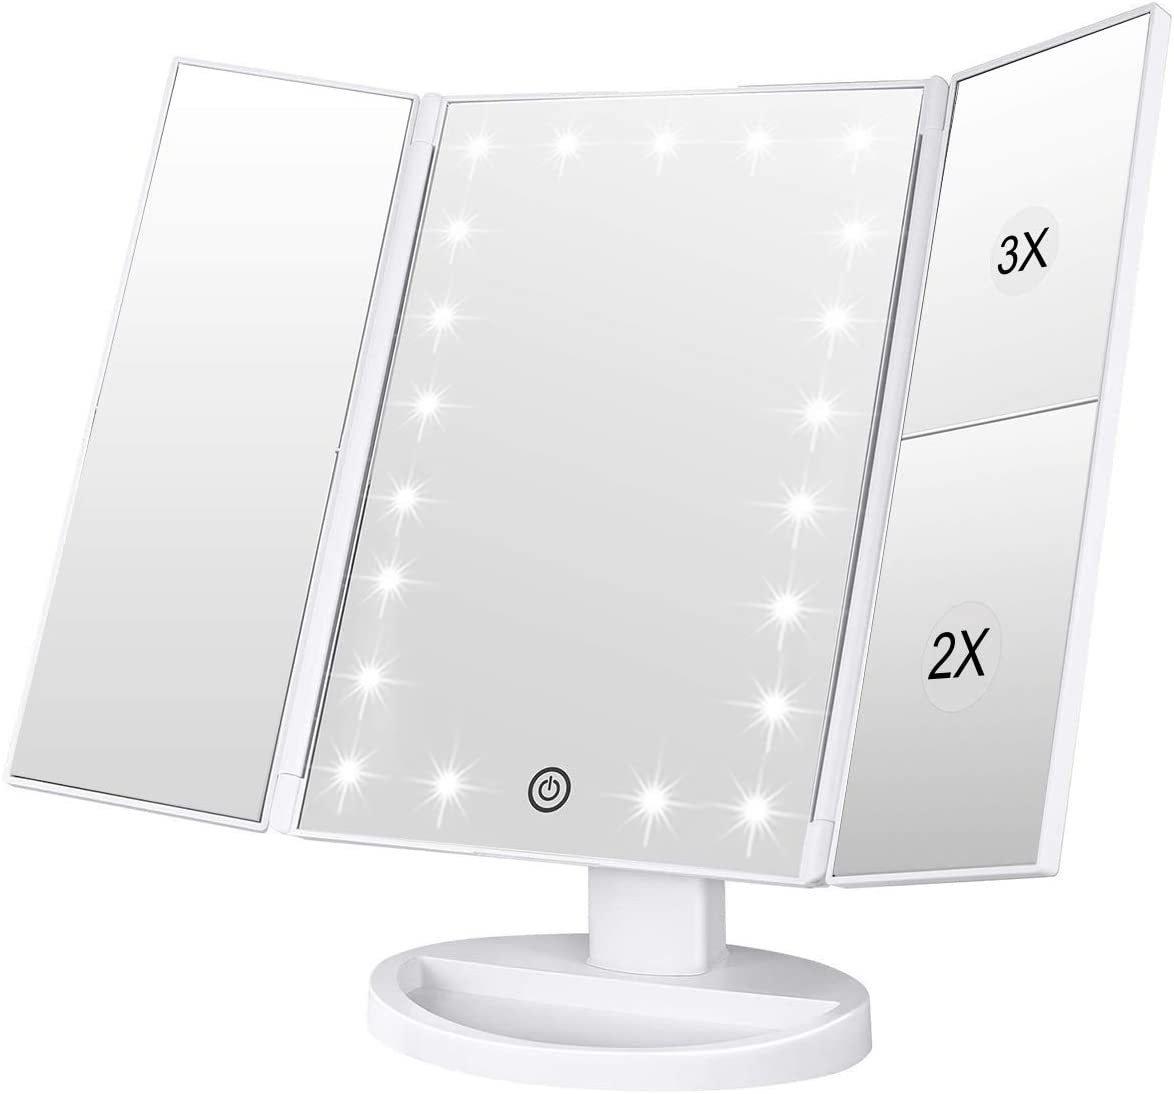 Lighted Makeup Mirror, Tri-fold Vanity Mirror with 3X 2X 1X Magnification,21 Natural LED Nights and Touch Screen, Batteries and USB Power Supply Adjustable Tabletop Cosmetic Mirror White